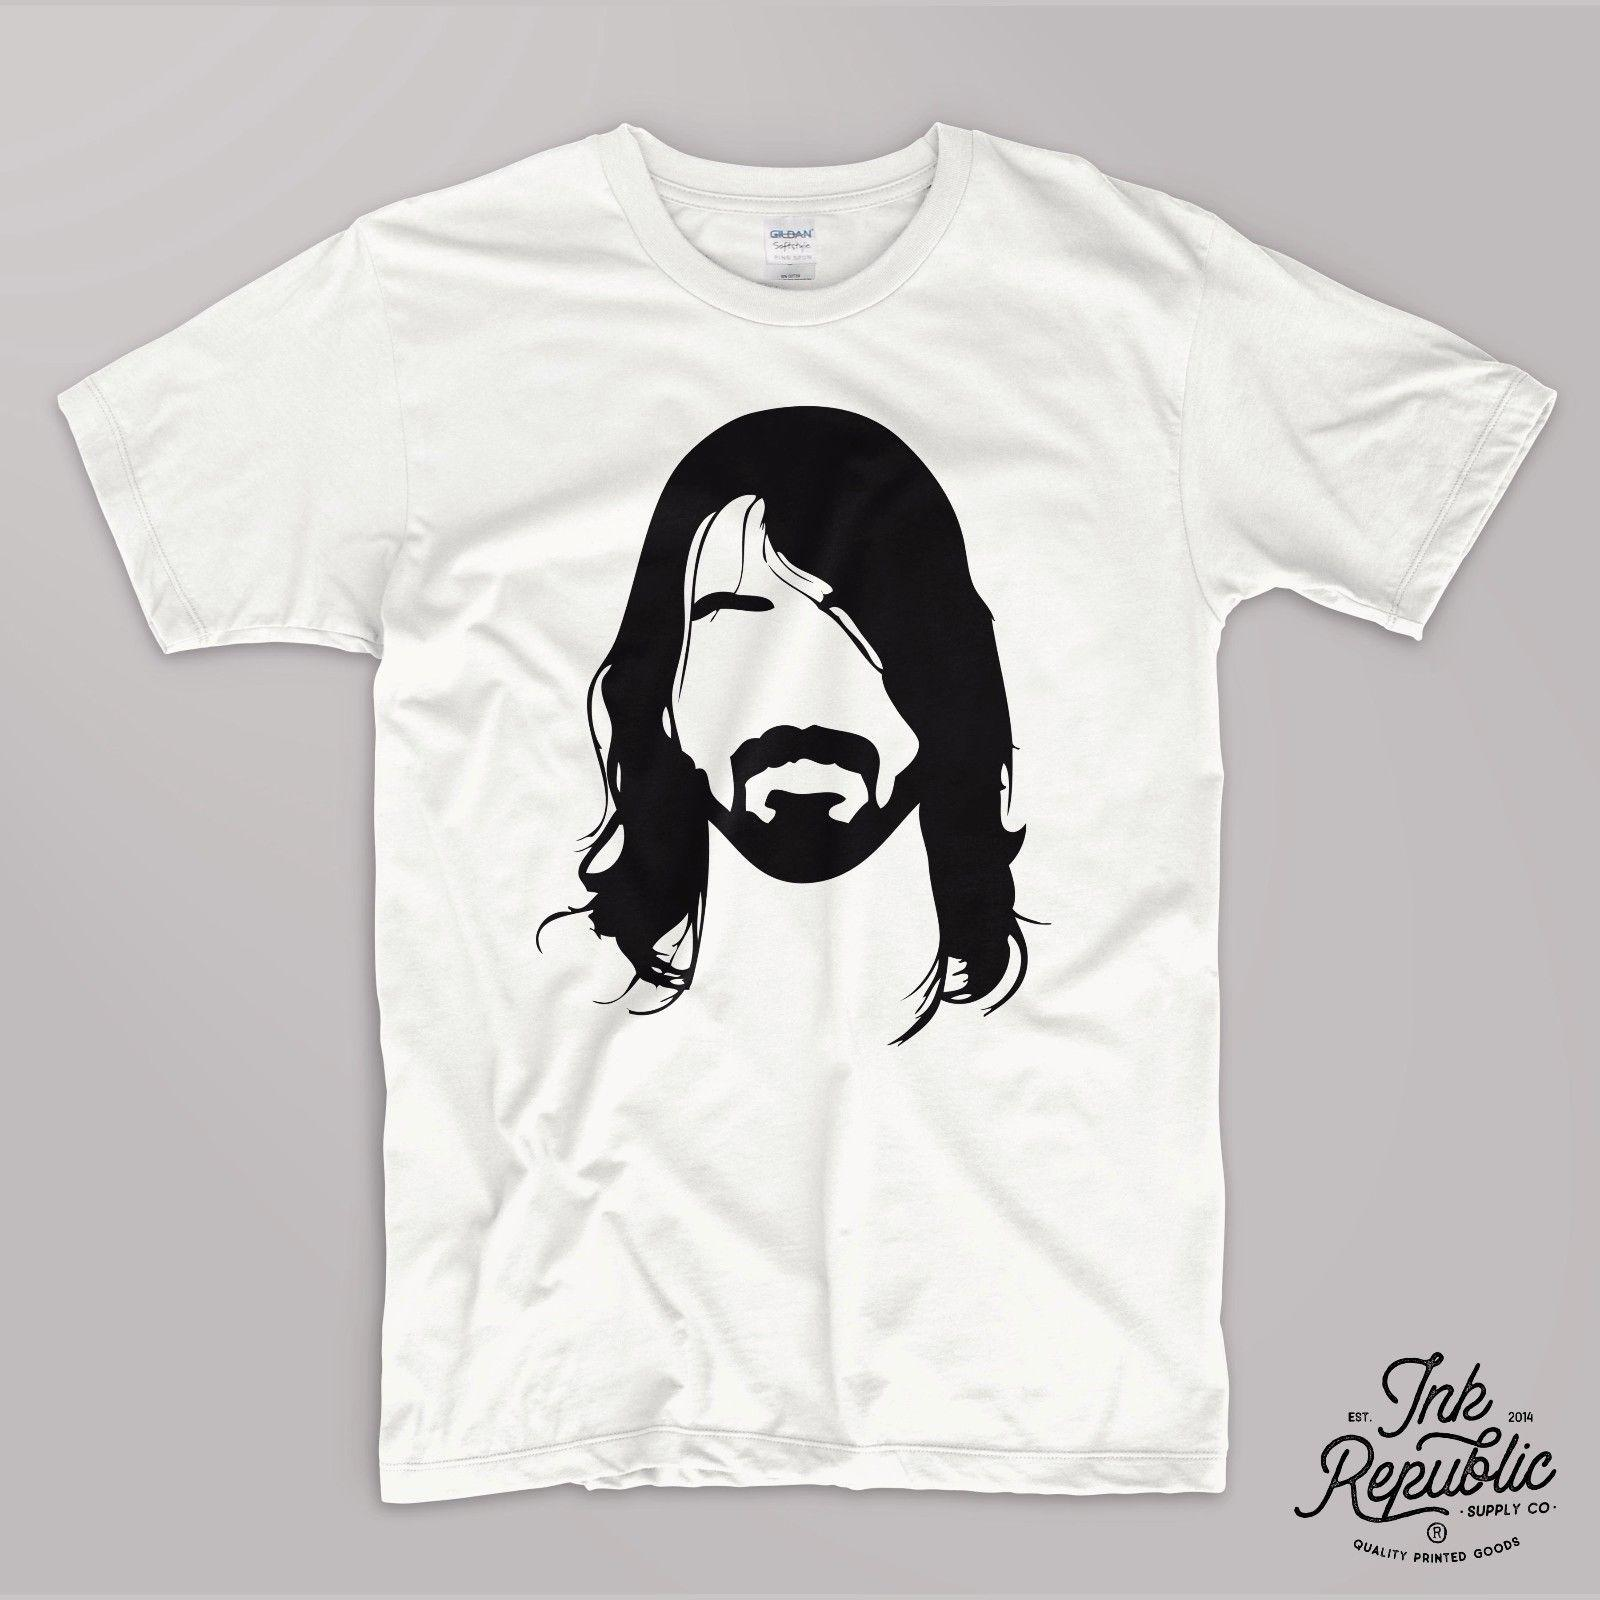 ed599e28c DAVE GROHL T SHIRT Tee Rock Legend Foo Fighters Tumblr Oversize Grunge Buy T  Shirt Designs Printing Tee Shirts From Designtshirt, $11.17| DHgate.Com